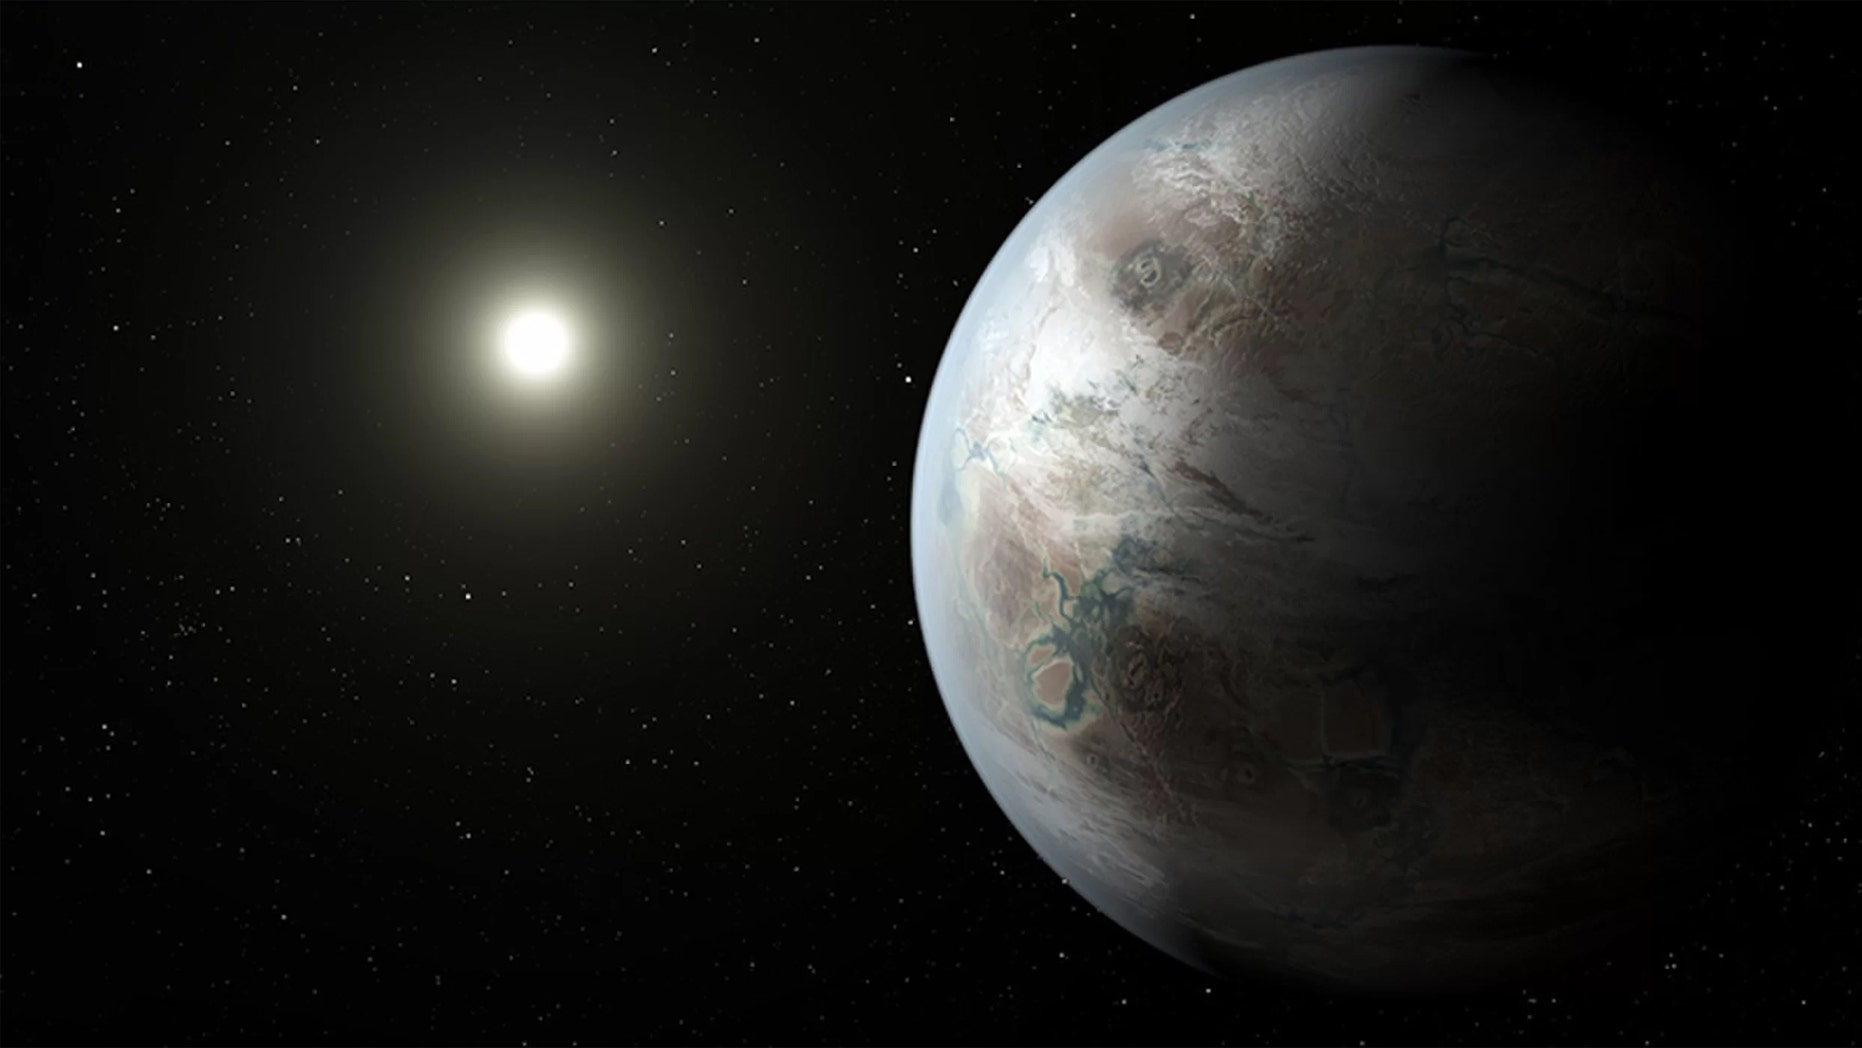 If things went south on Earth, could Mars or an exoplanet be Earth 2.0? Credit: T. Pyle/NASA/JPL-Caltech